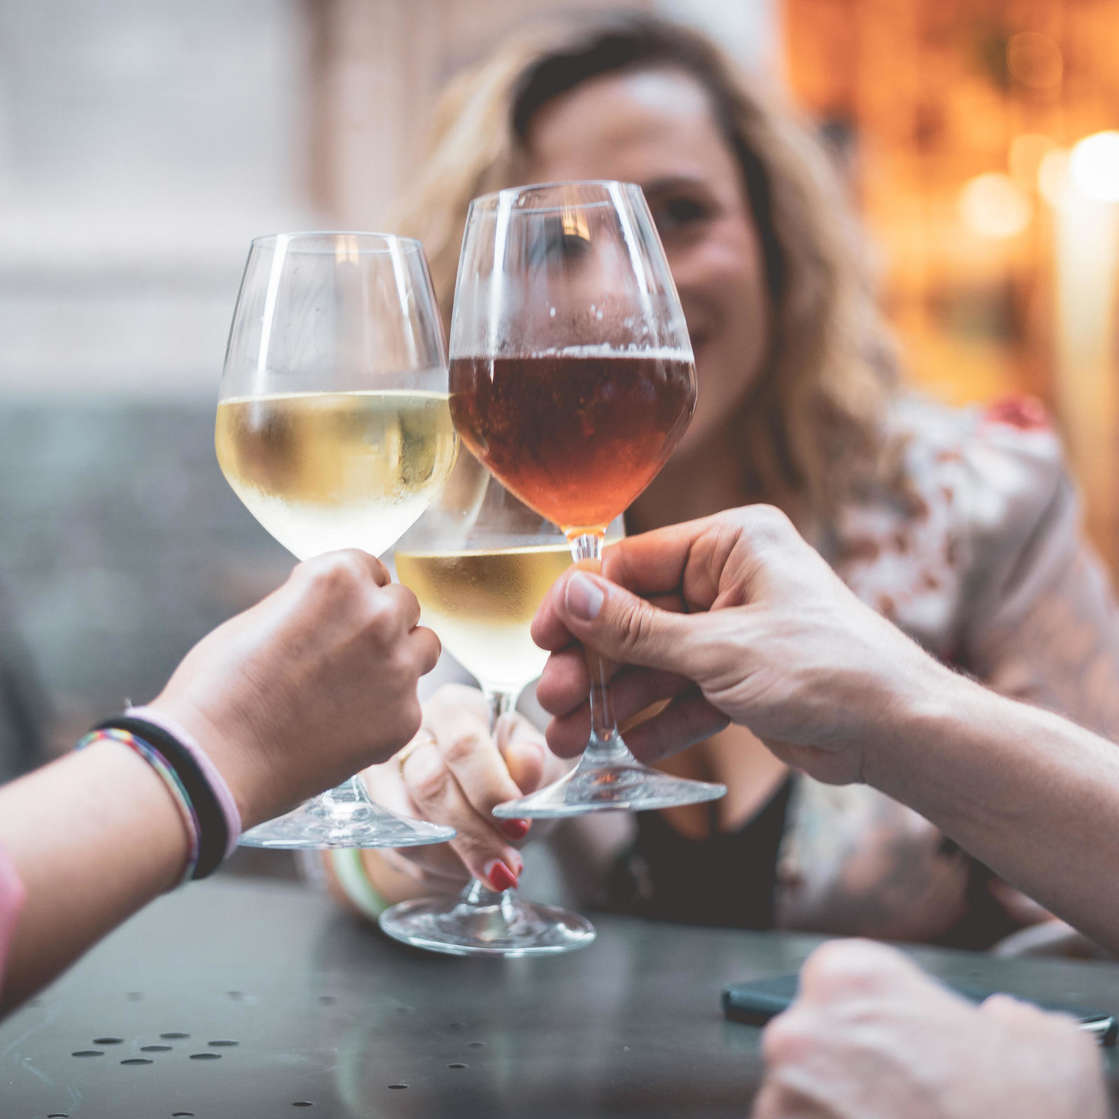 a hand holding a glass of wine: Friends Toasting Wineglasses In Restaurant